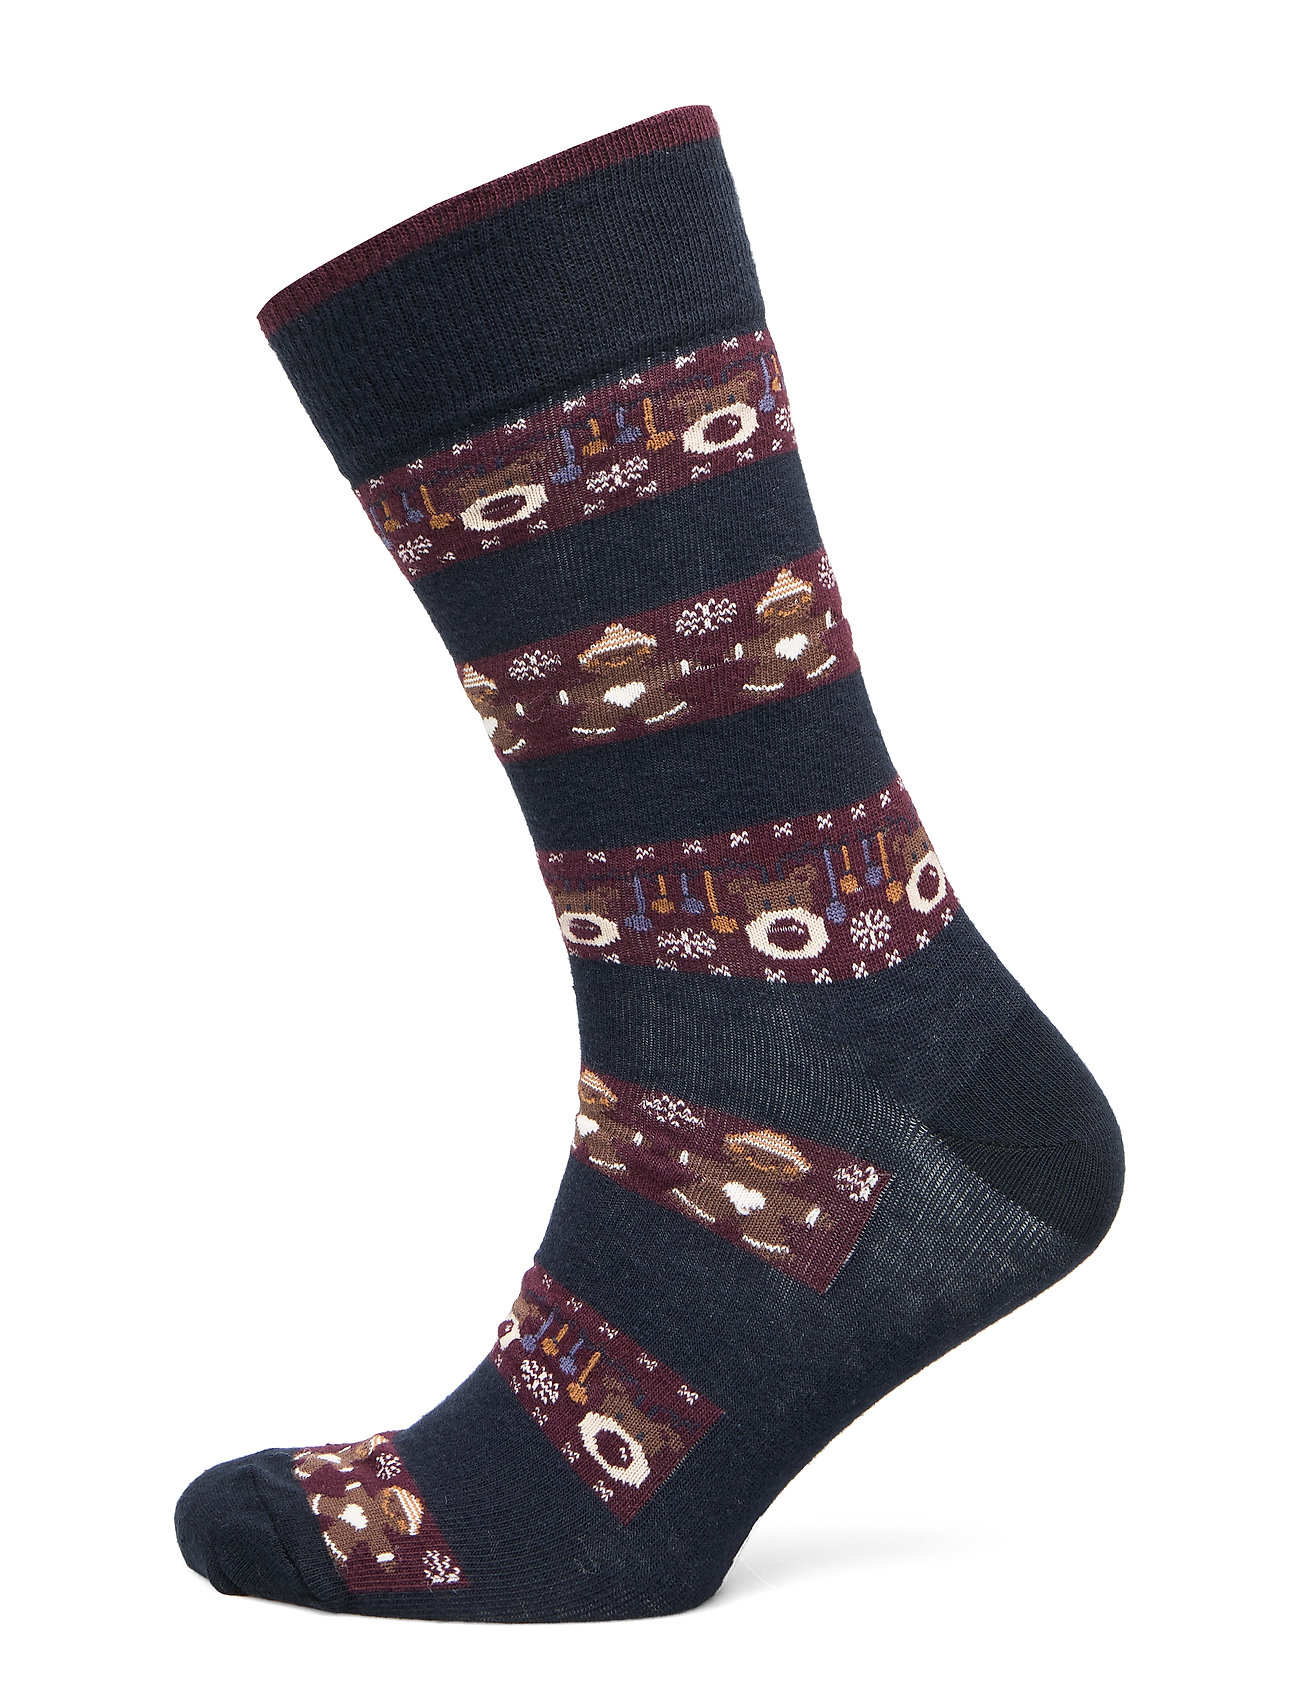 TOPECO SOCK CHRISTMAS TIME - NAVY BLUE CHRISTMAS